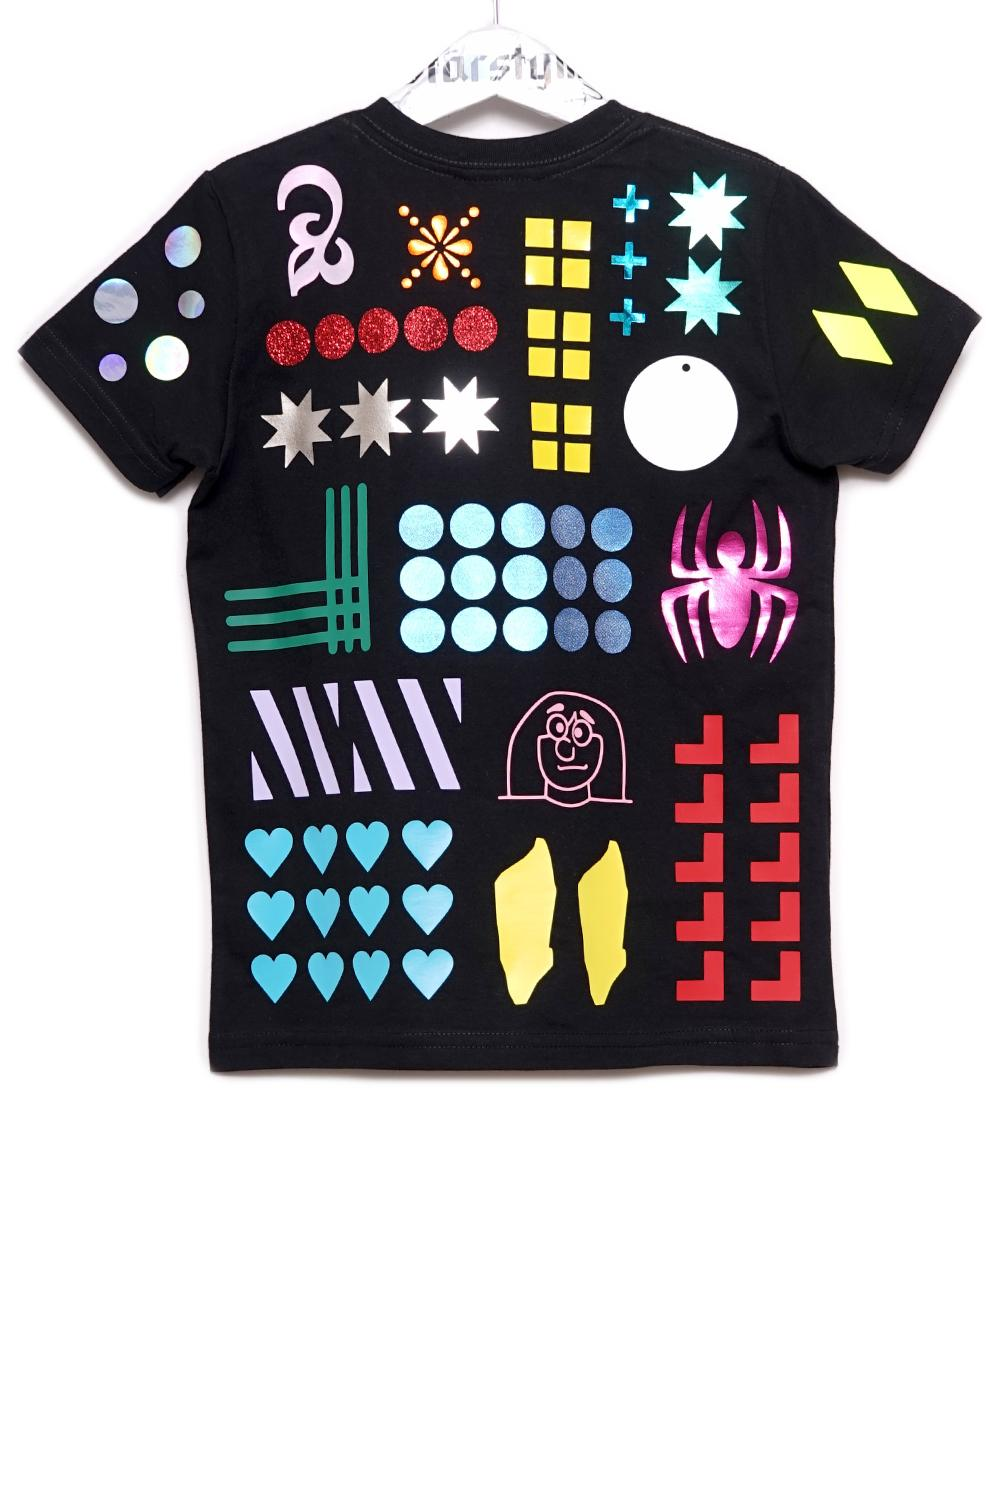 Everything Allover T-Shirt Kids - 2